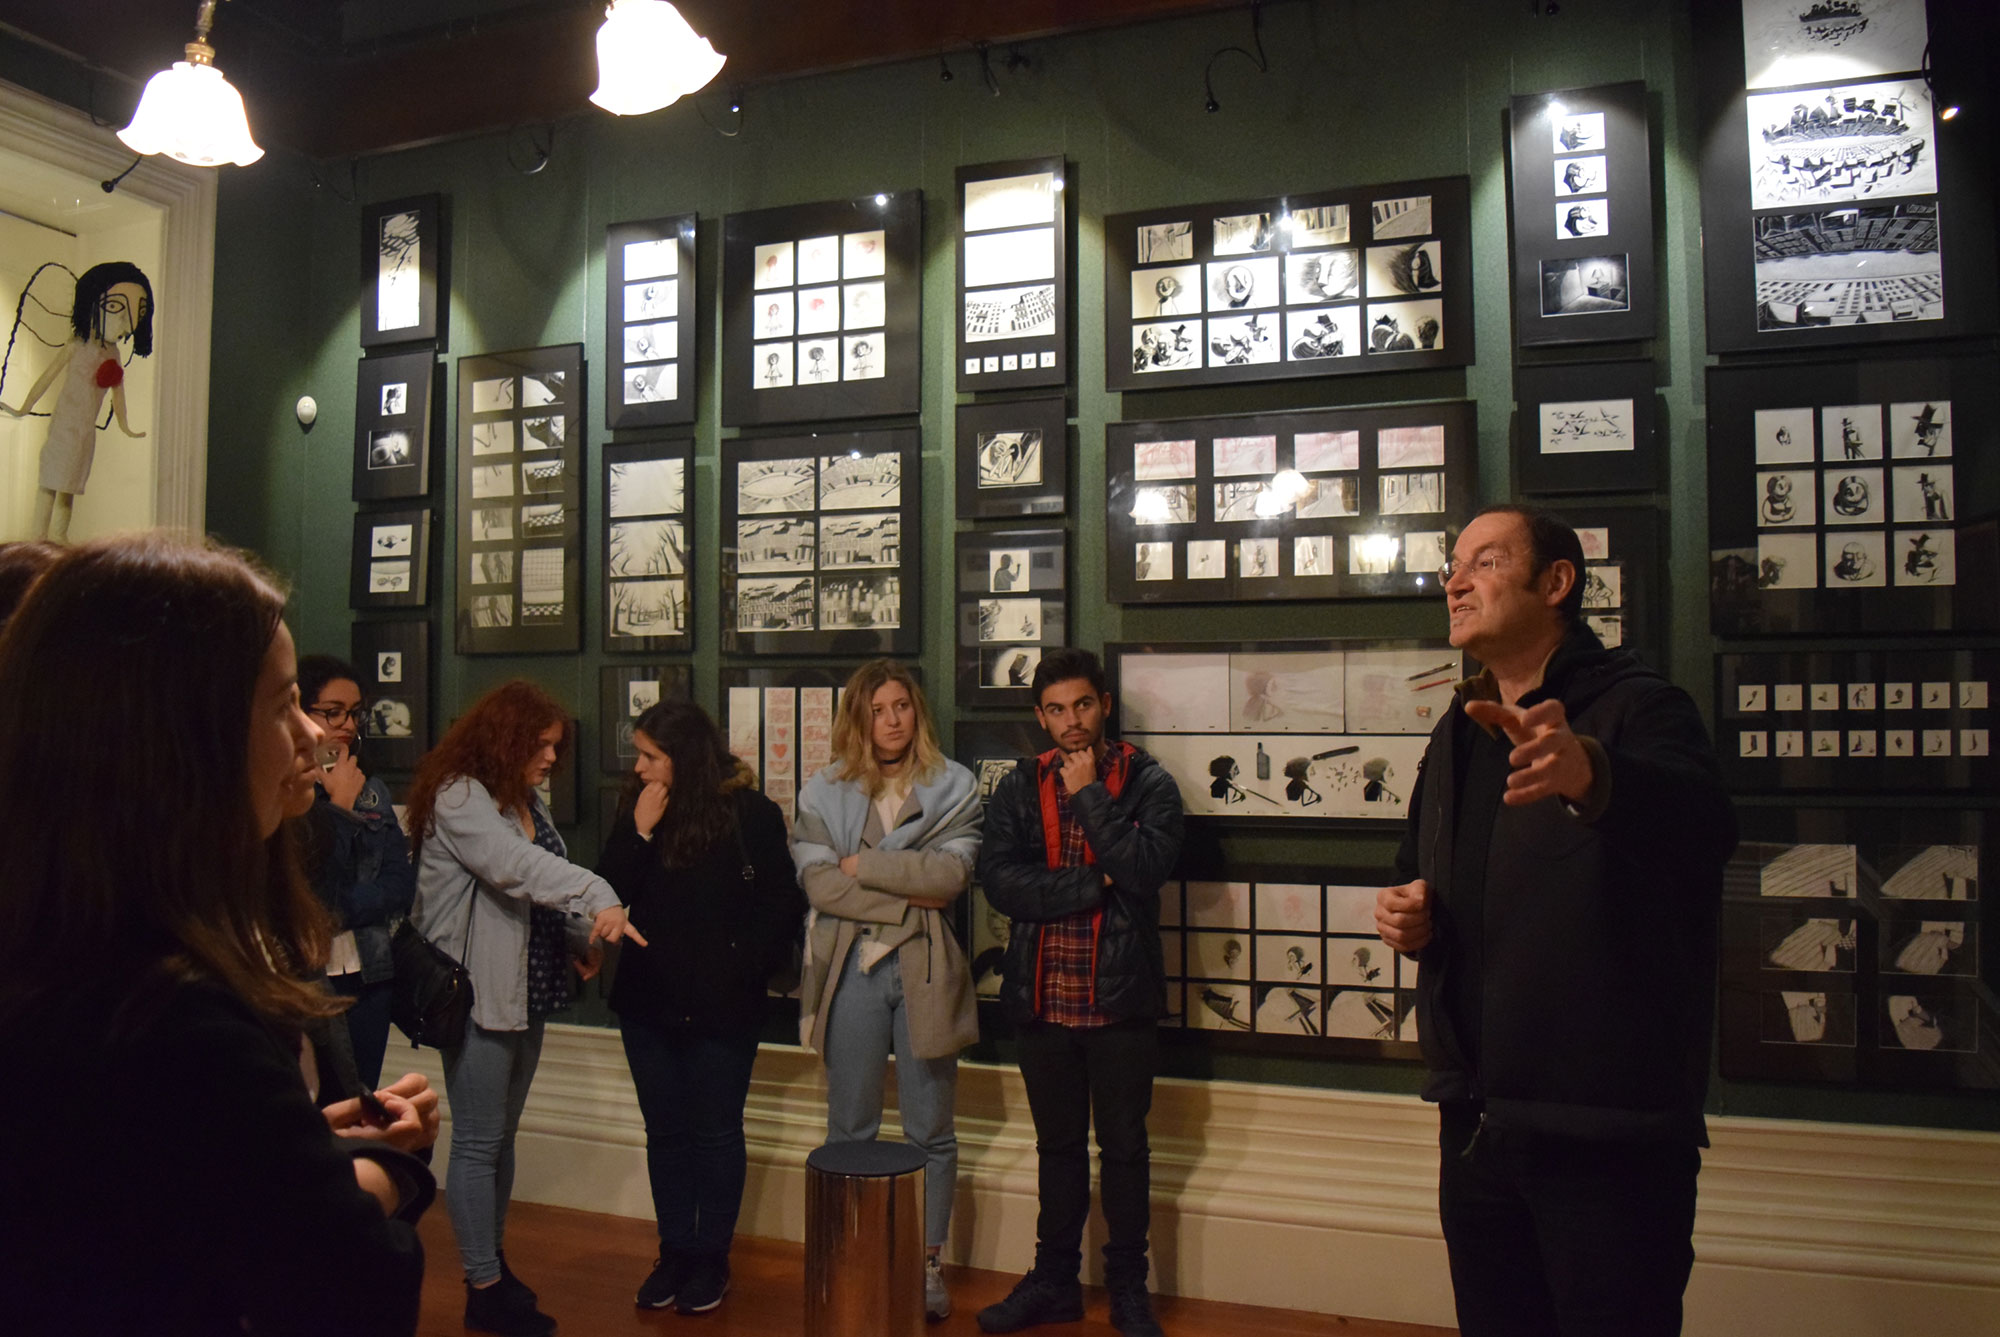 Abi Feijó (right) conducting a tour of his museum, Casa Museu de Vilar.